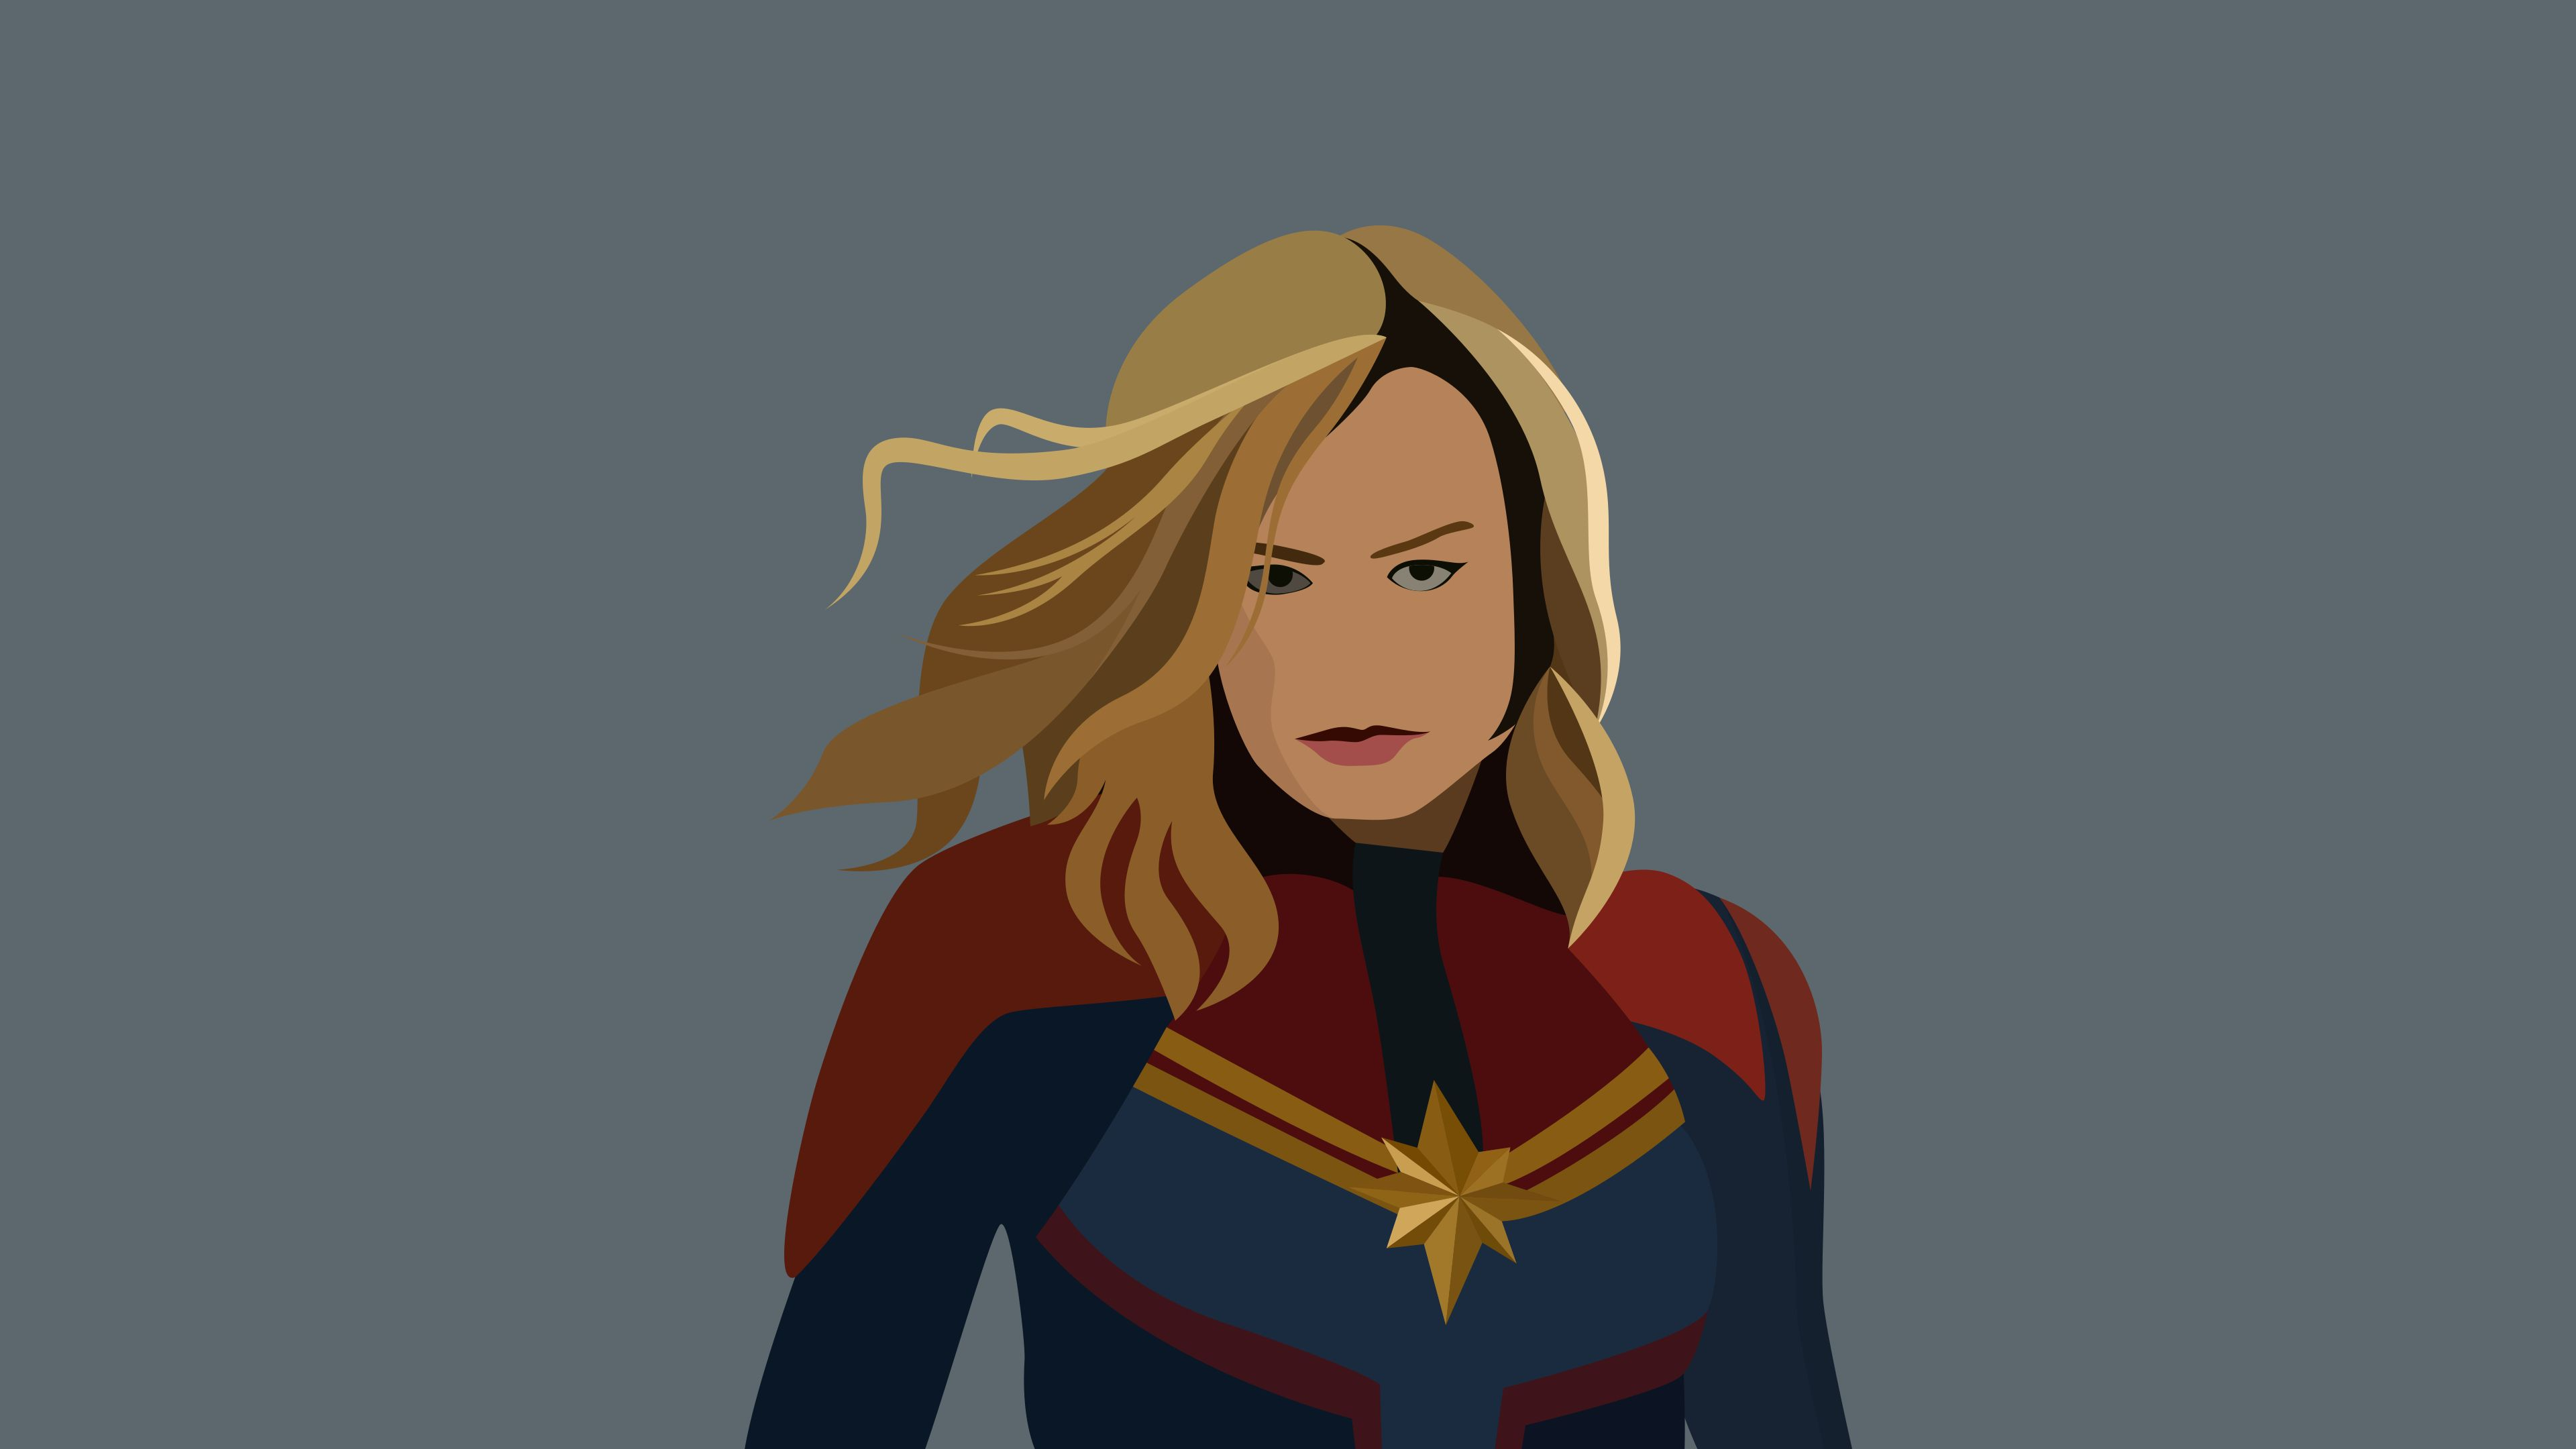 3840x2160 4K Captain Marvel Artwork Minimal Wallpaper, HD Minimalist ...